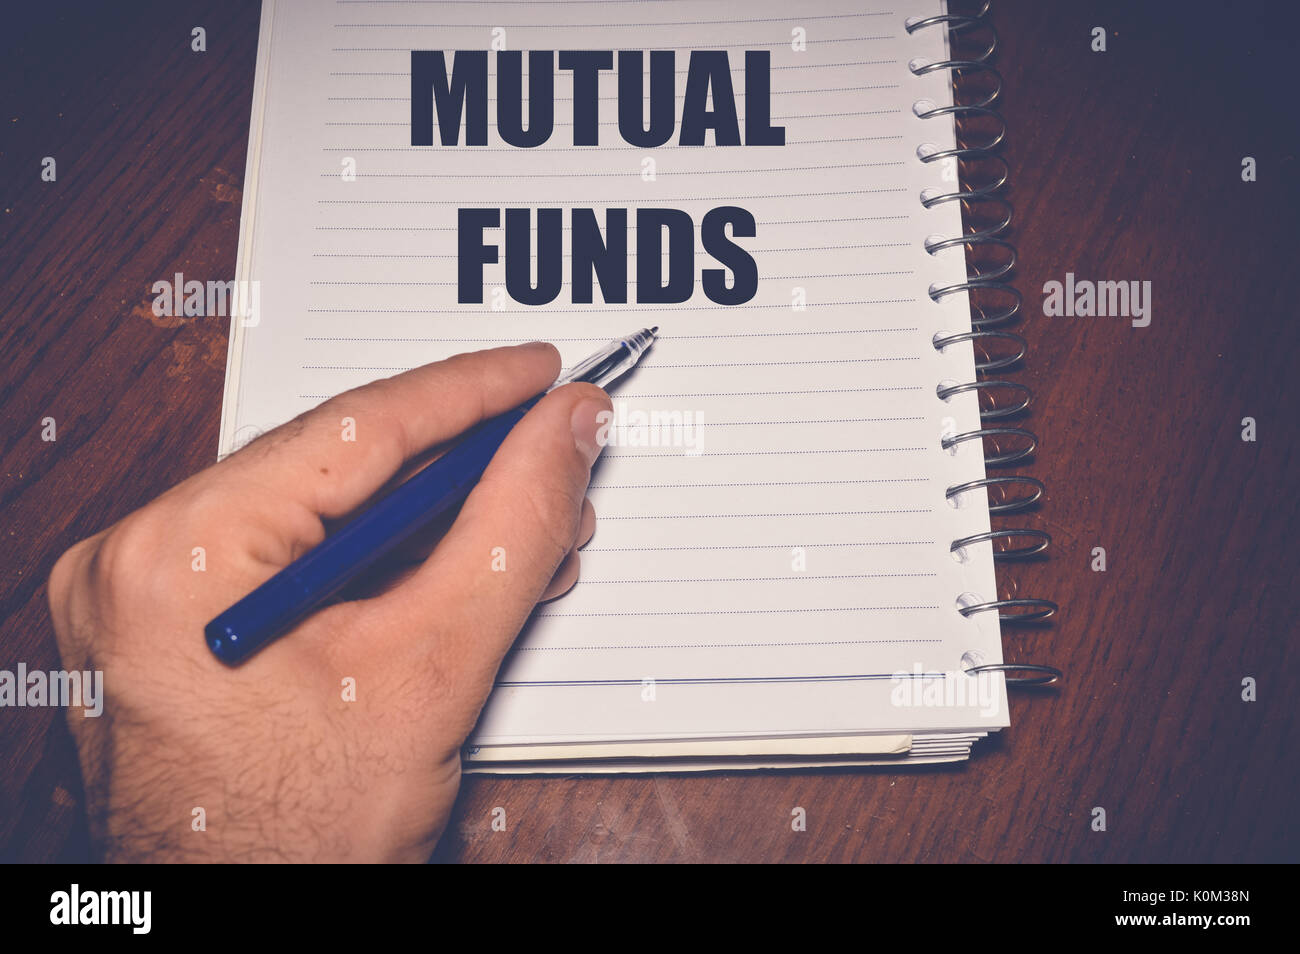 mutual funds business background - Stock Image